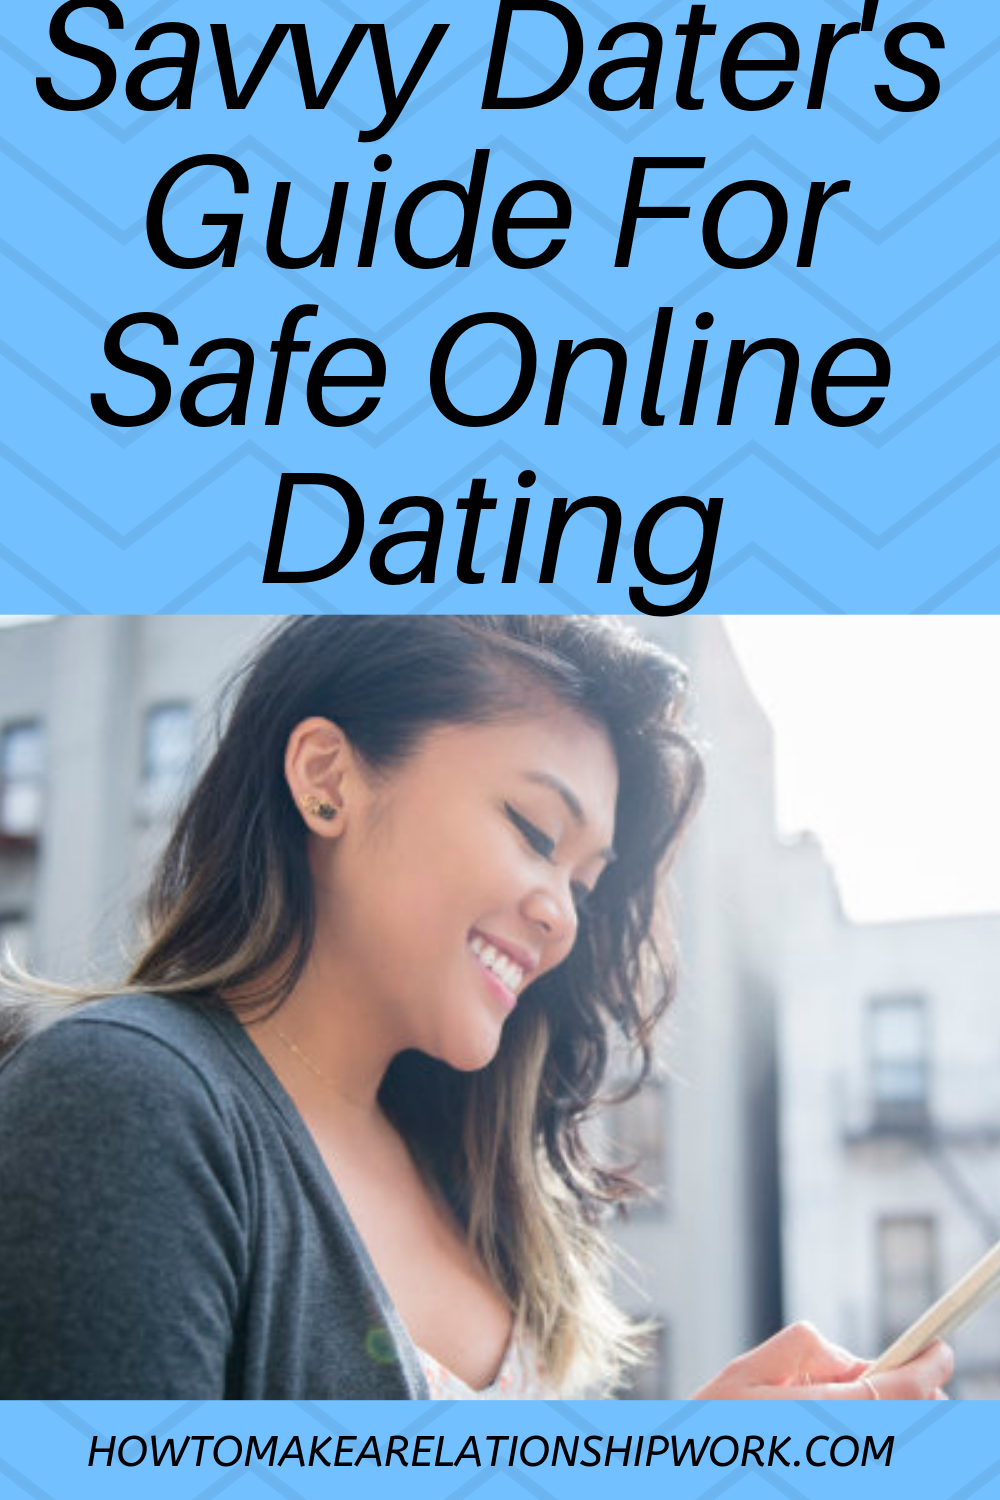 Online dating site guide